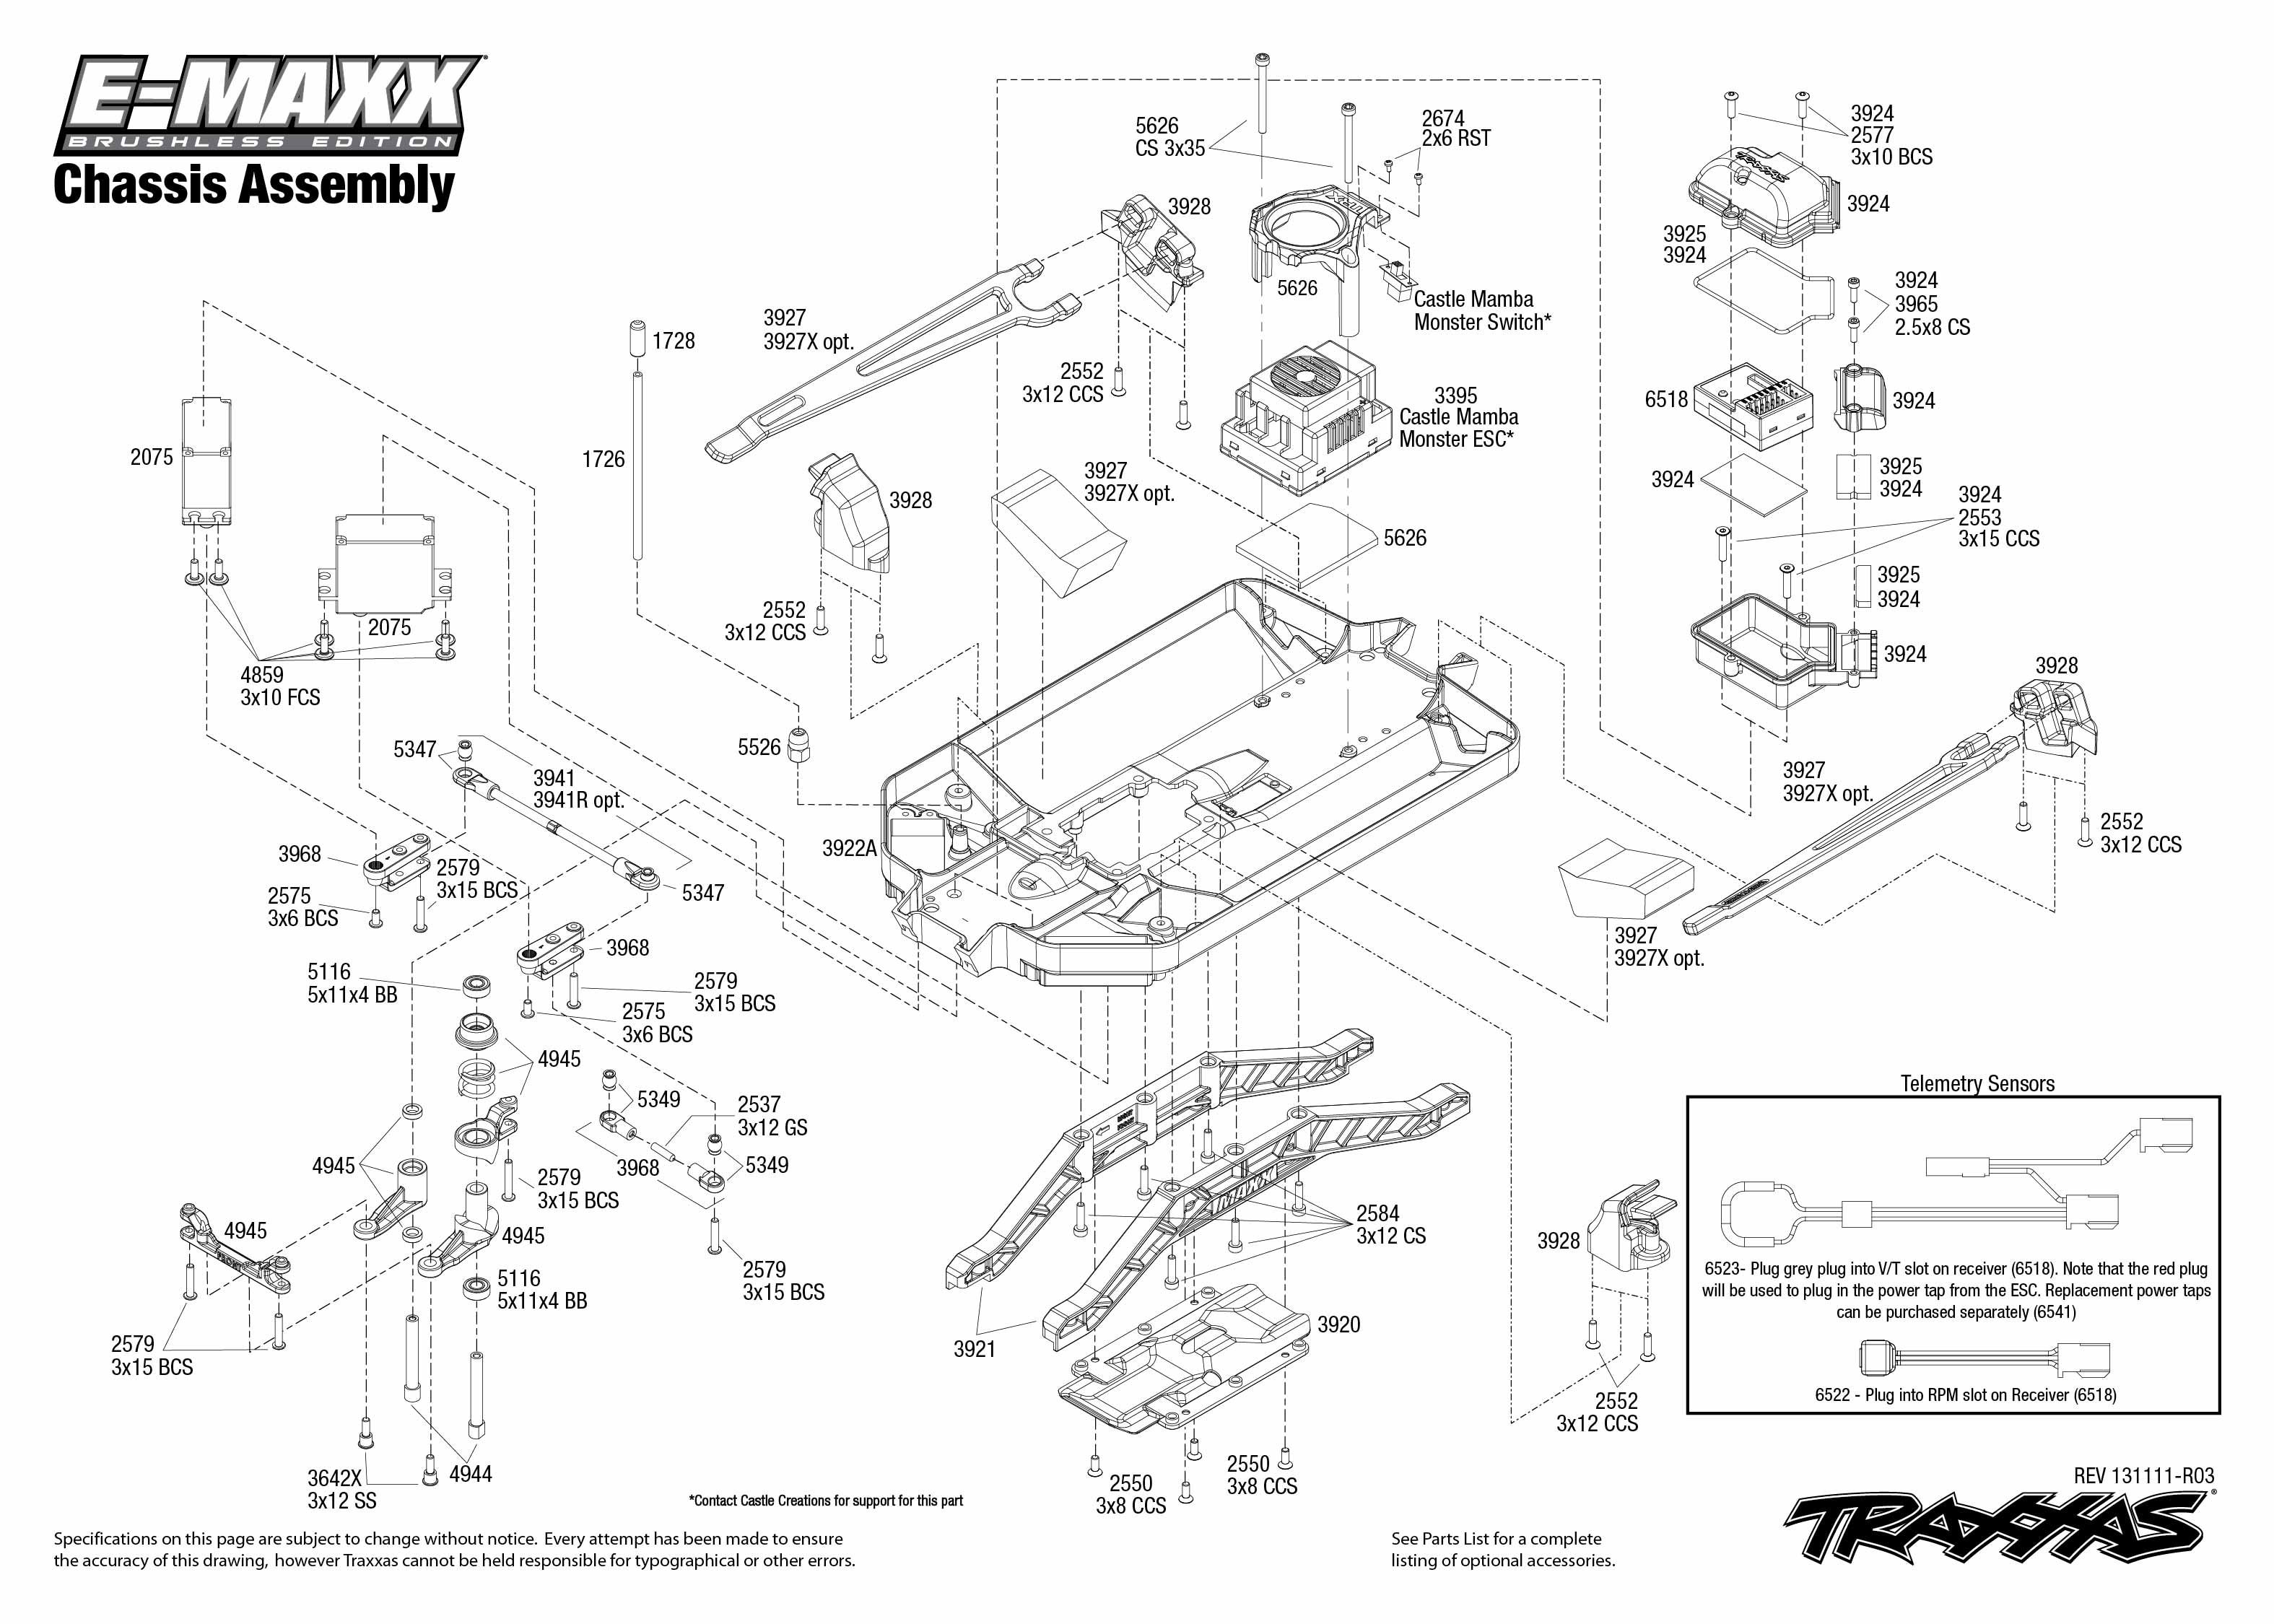 traxxas t maxx 2 5 transmission diagram vw wiring for dune buggy emaxx parts brushless 3908 chassis